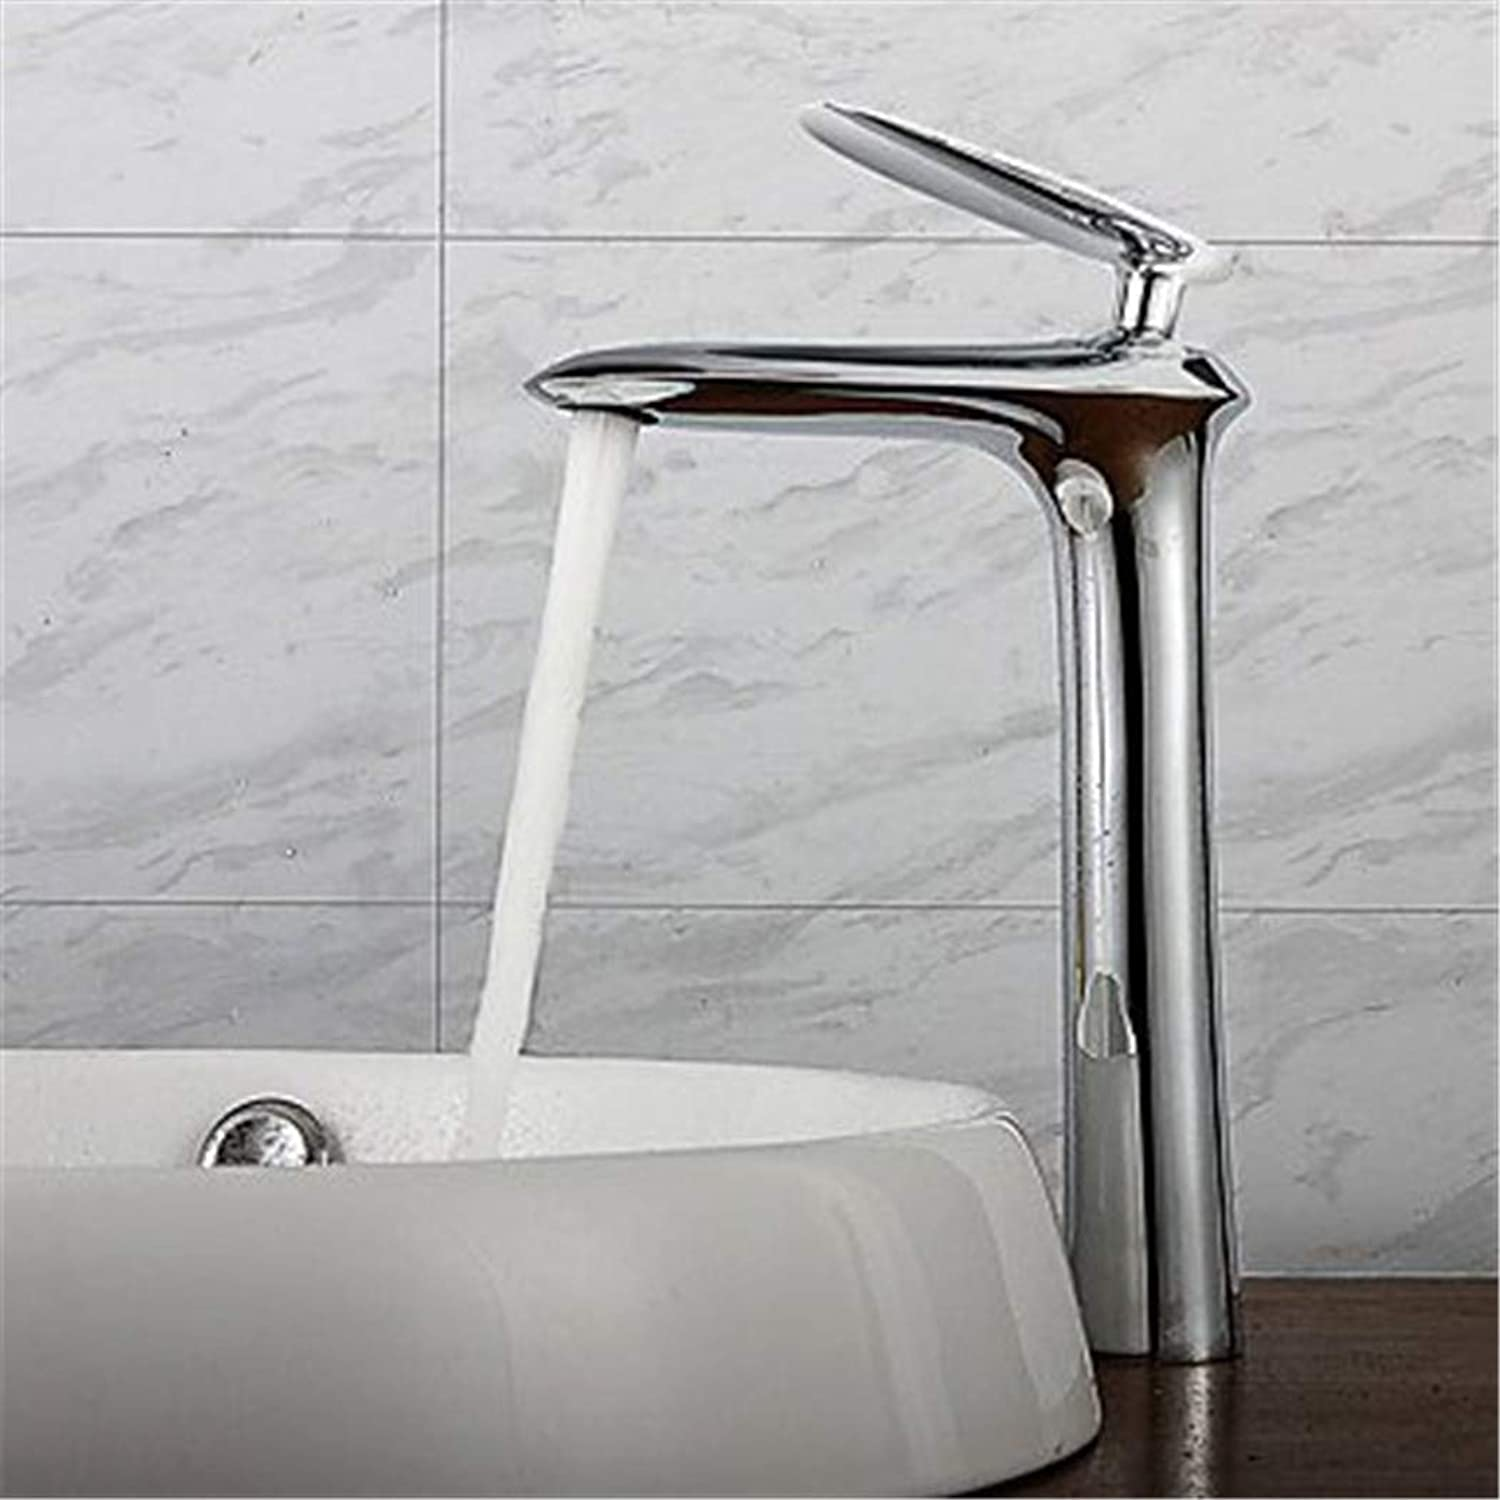 Kitchen Sink Taps Bathroom Taps Retro Modern Central Position Waterfall Thermostatic Rain Shower with Ceramic